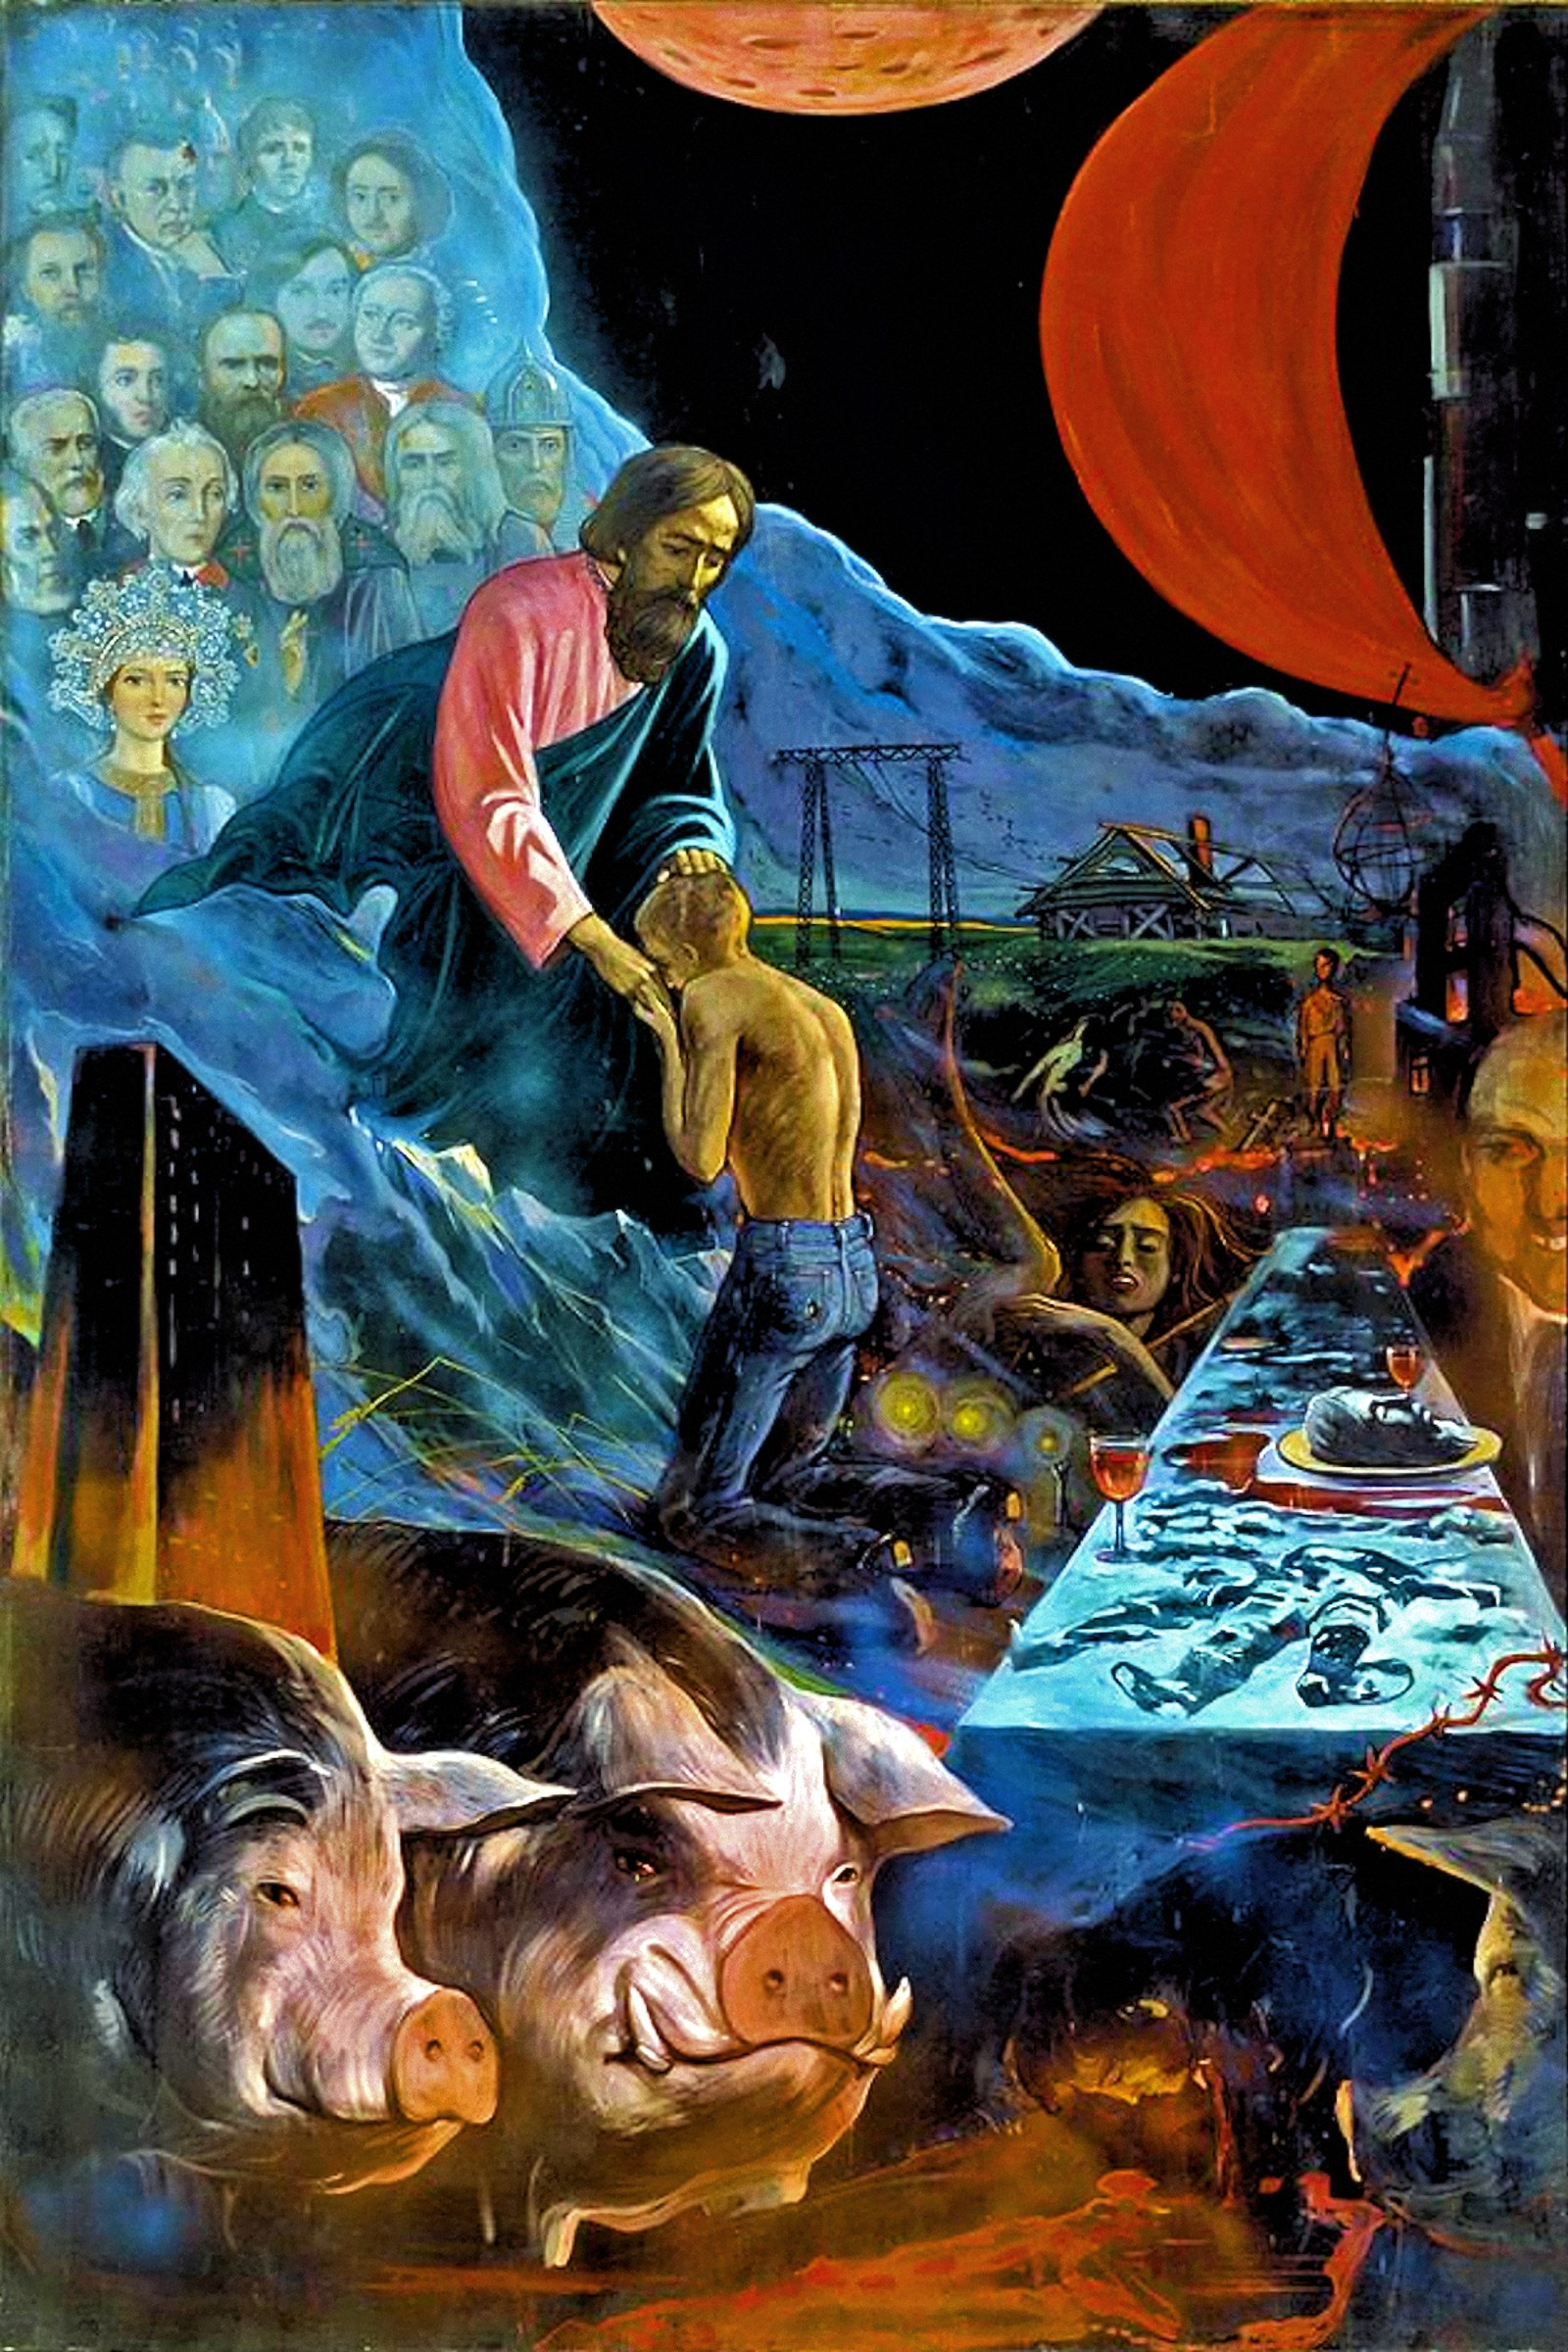 00 Ilya Glazunov. The Return of the Prodigal Son. 1977